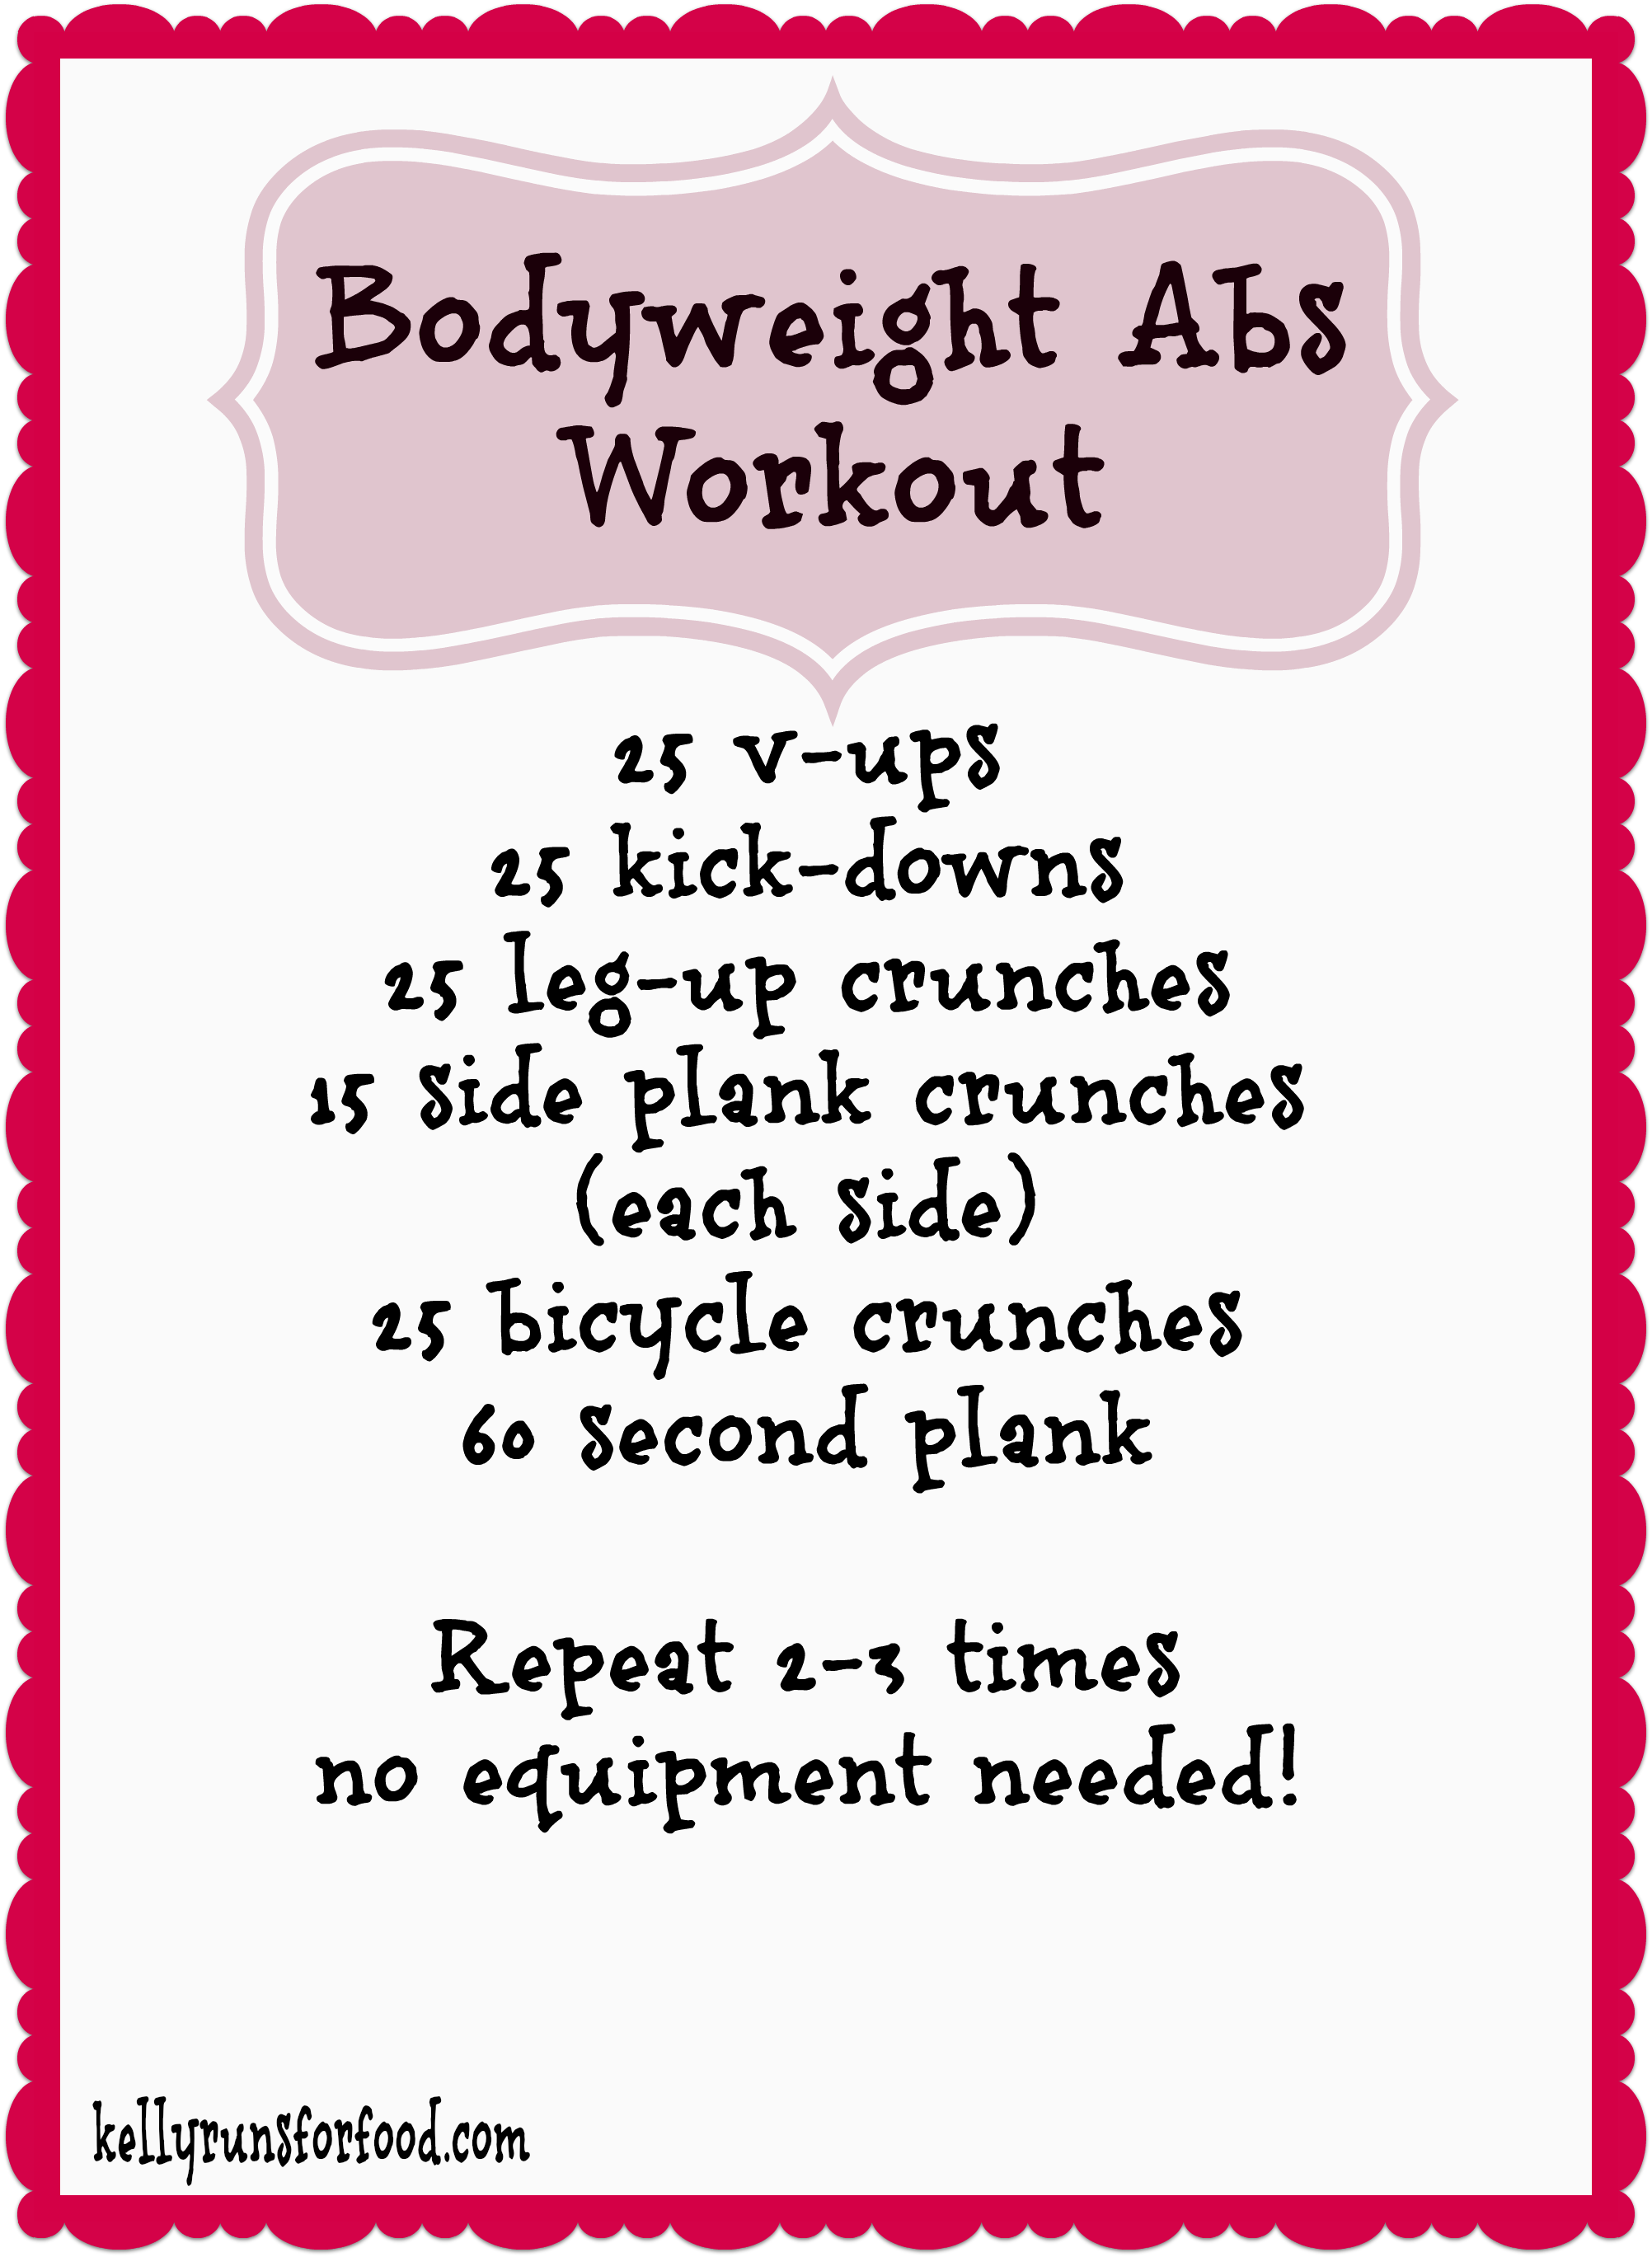 Bodyweight Abs Workout